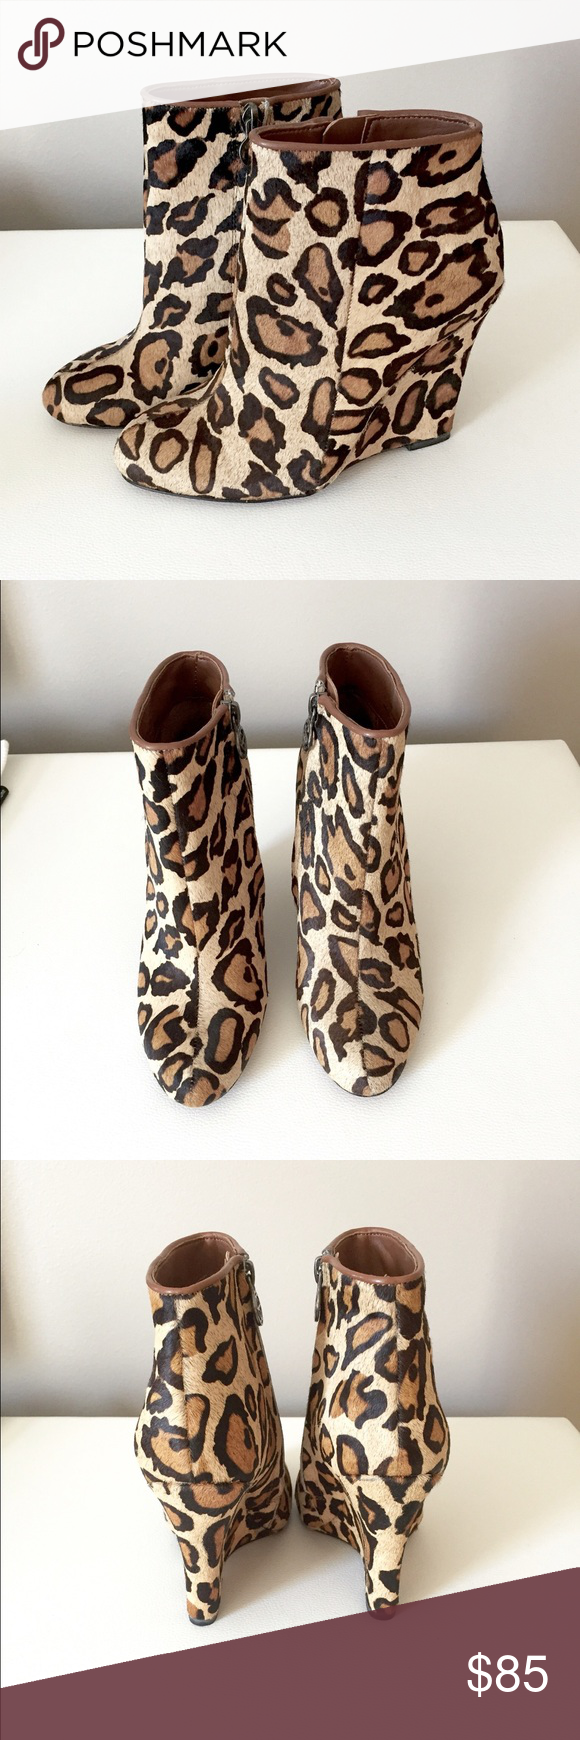 Leopard Calf Hair Wedge Bootie NWT $130 Brand new! Wilma Booties with 4 inch height. Genuine calf hair and still in box! NO TRADES don't ask. Listed on merc for less and free shipping Sam Edelman Shoes Ankle Boots & Booties